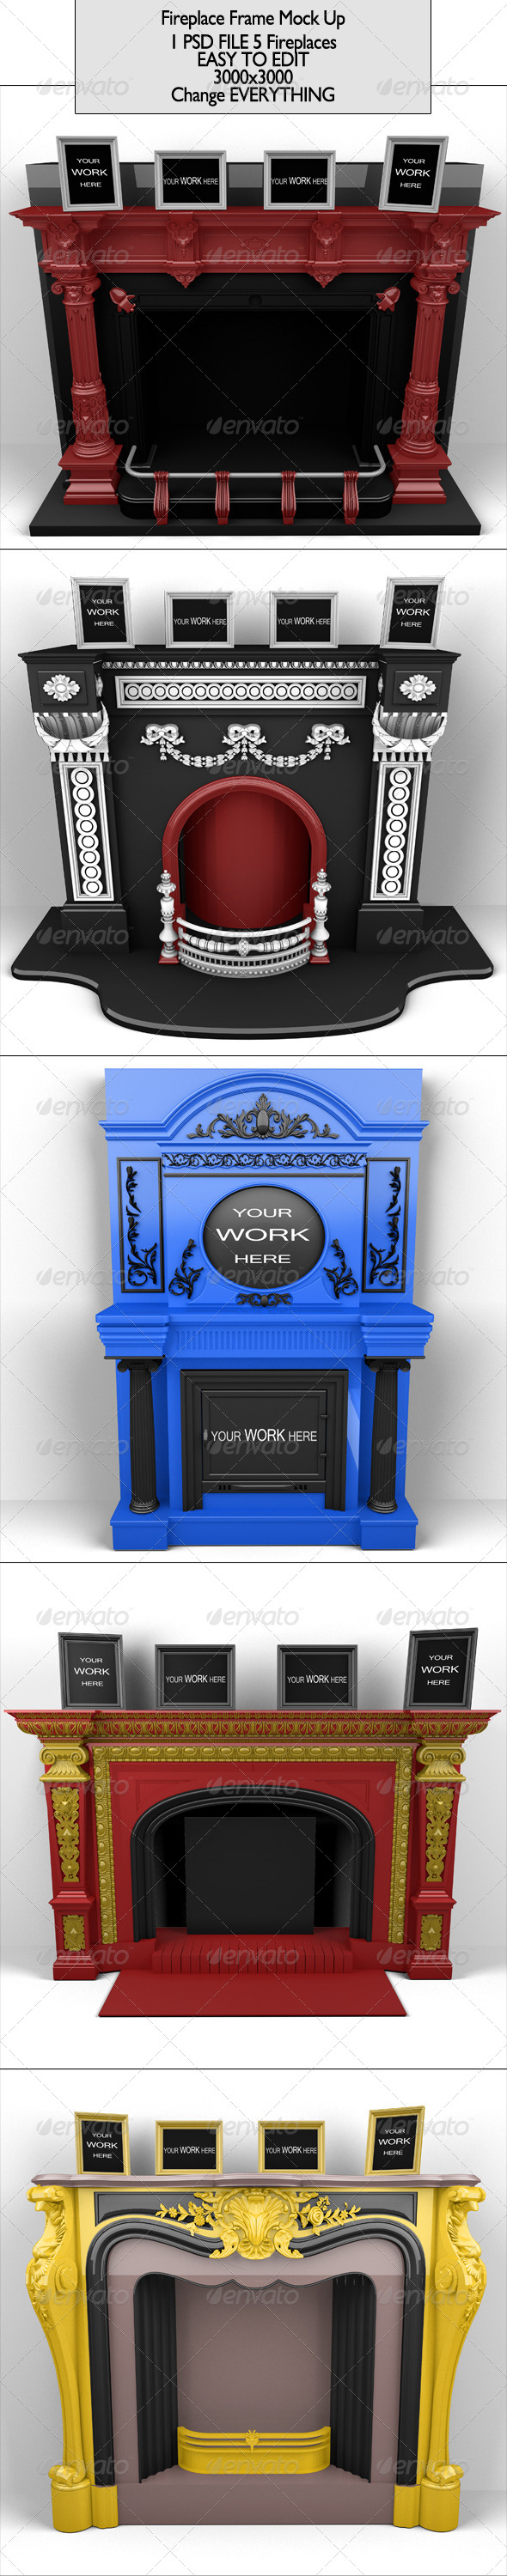 Fireplace Frame  - Photo Templates Graphics